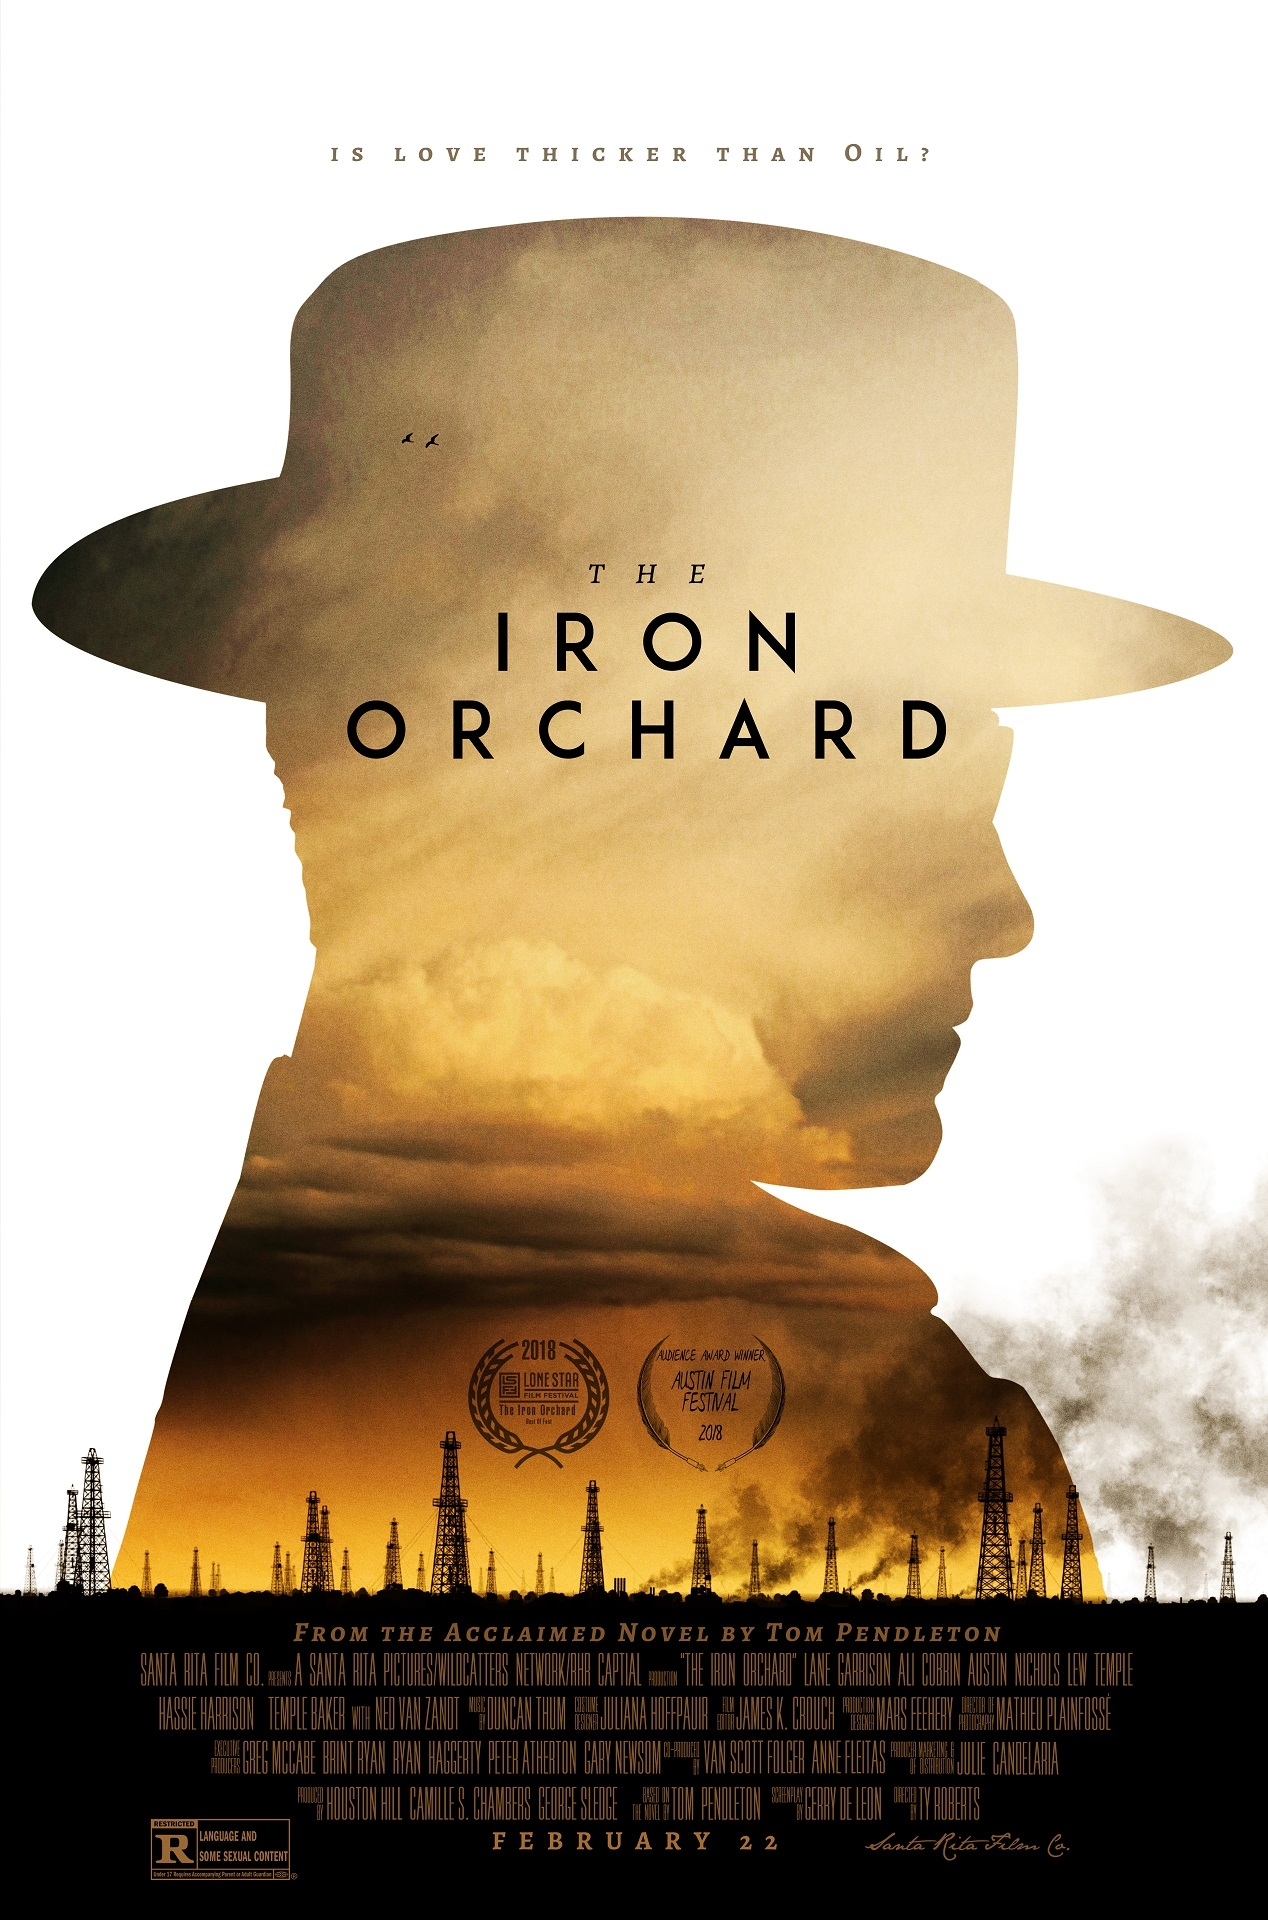 THE IRON ORCHARD Arrives on Digital, Blu-ray & DVD August 6th - No(R